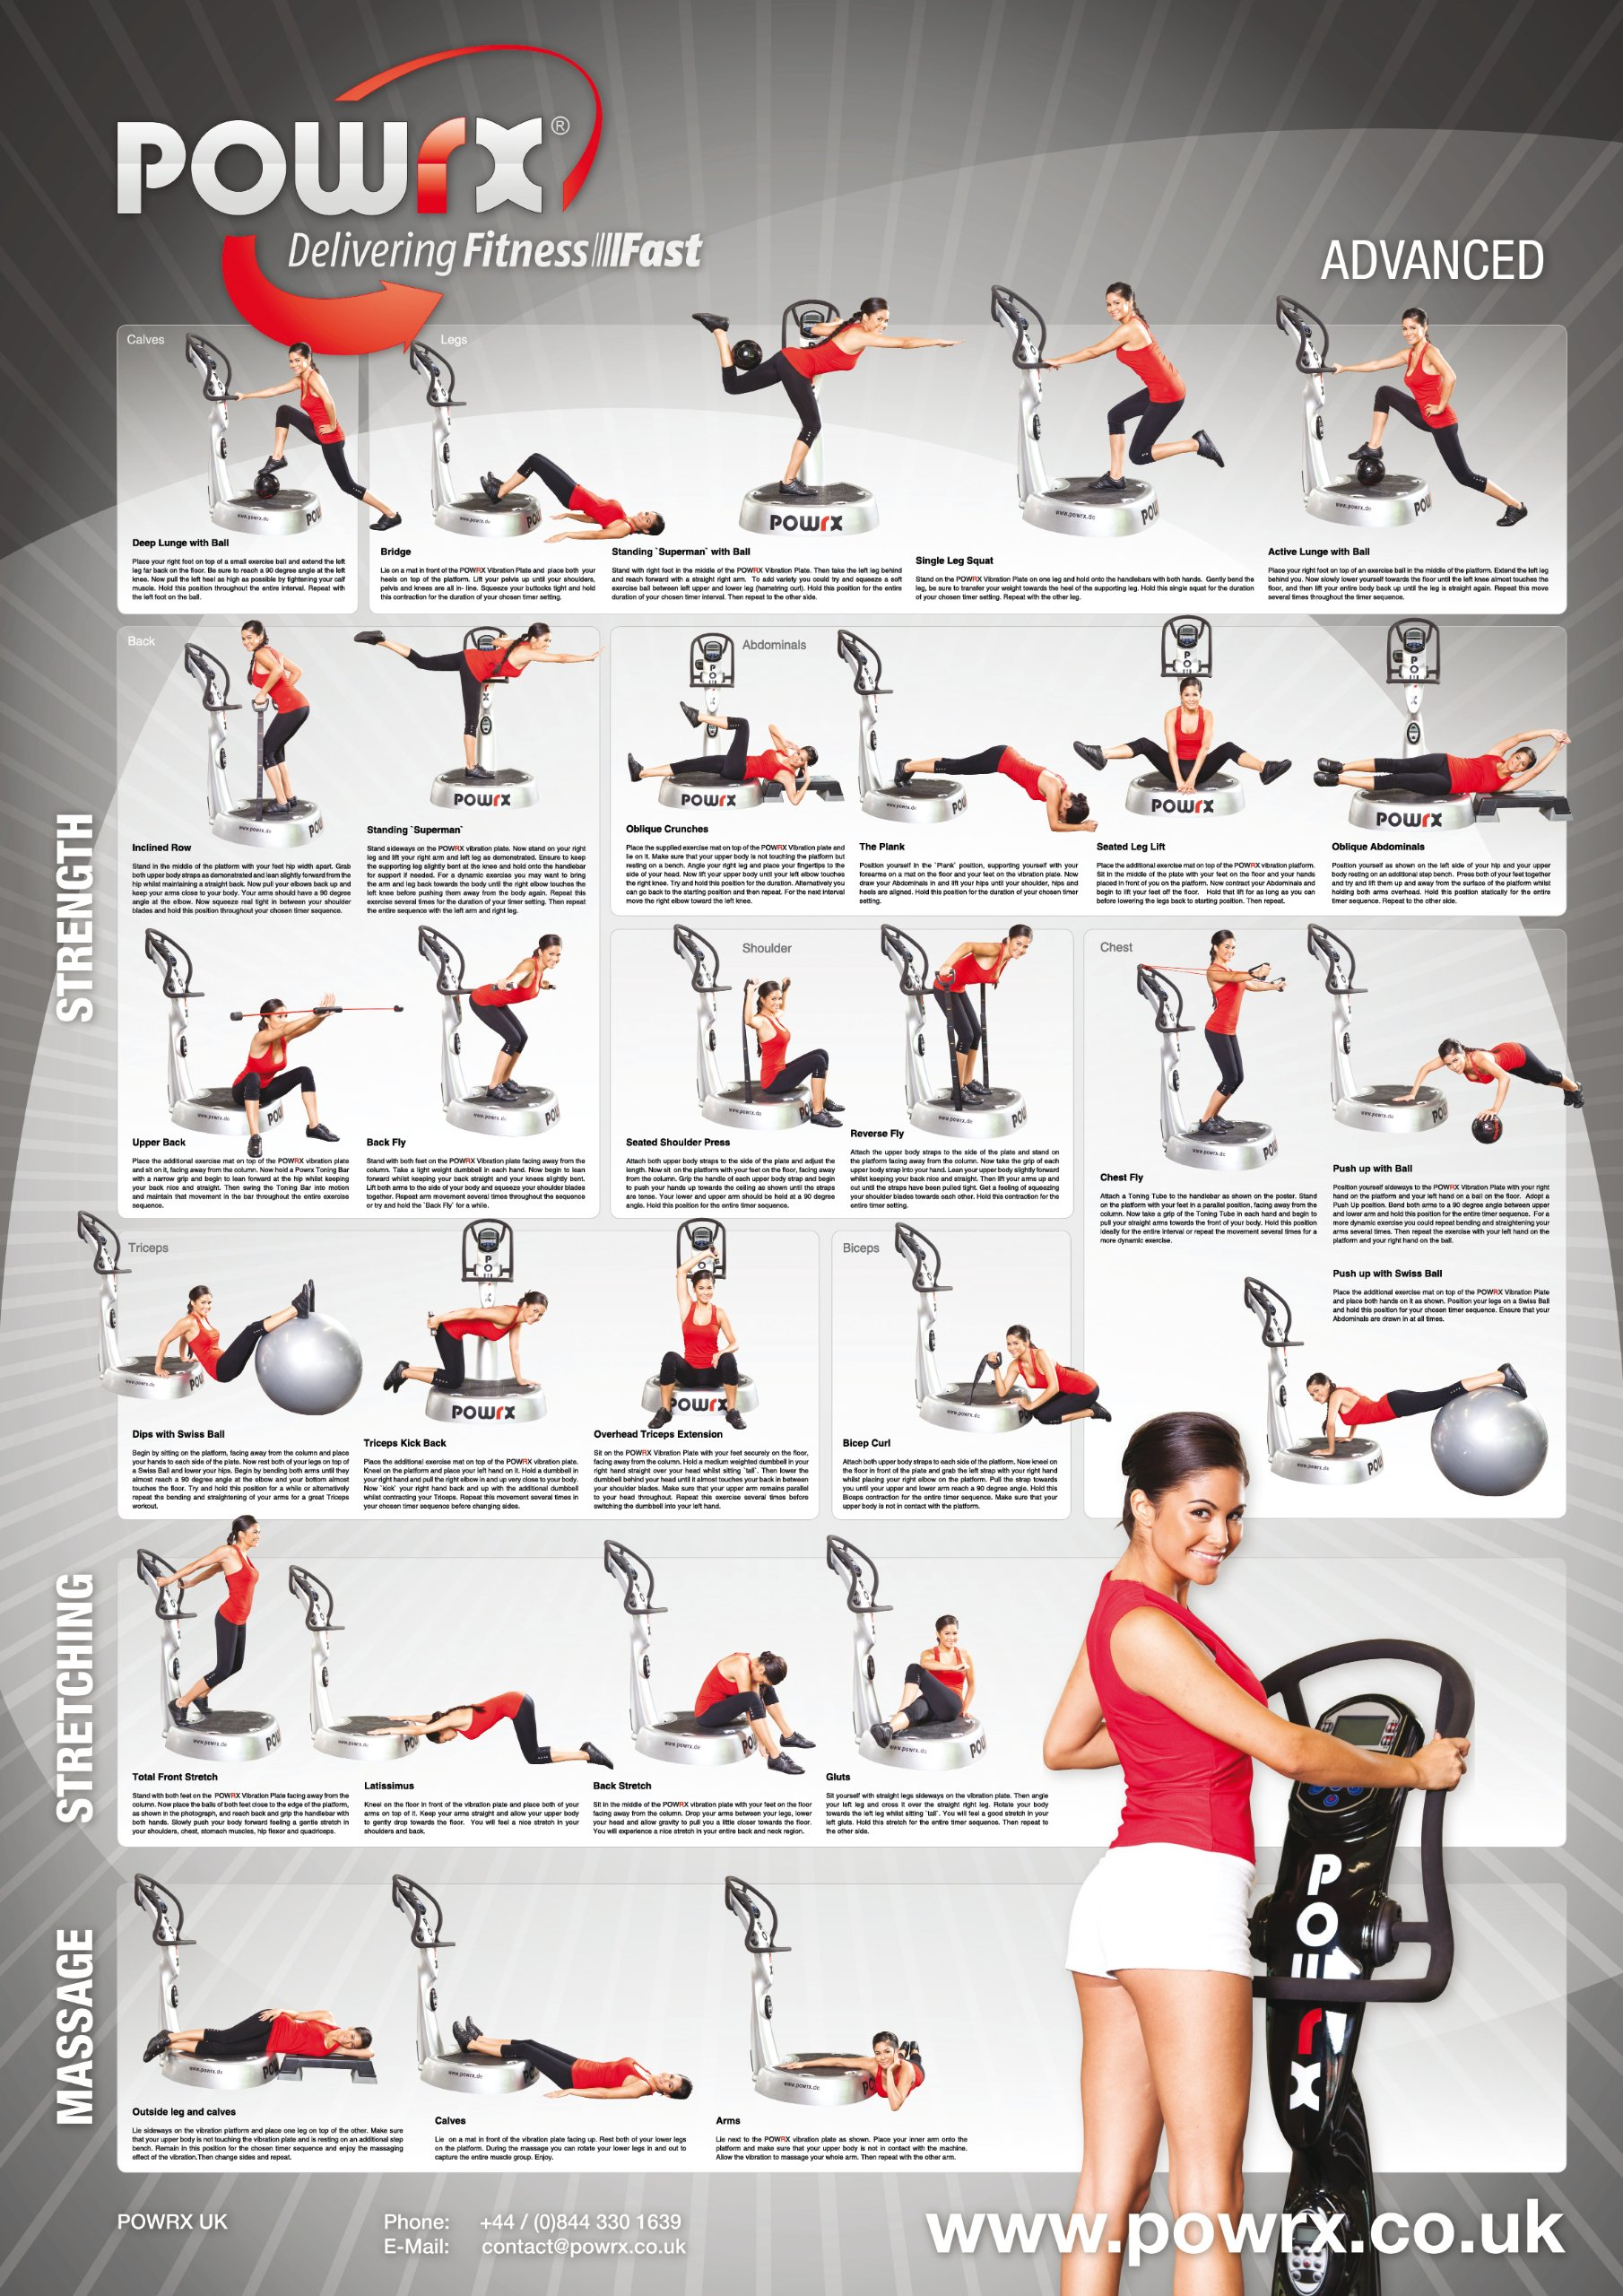 Advanced Whole Body Vibration Training Chart with 'New' Training Recommendation Insert.